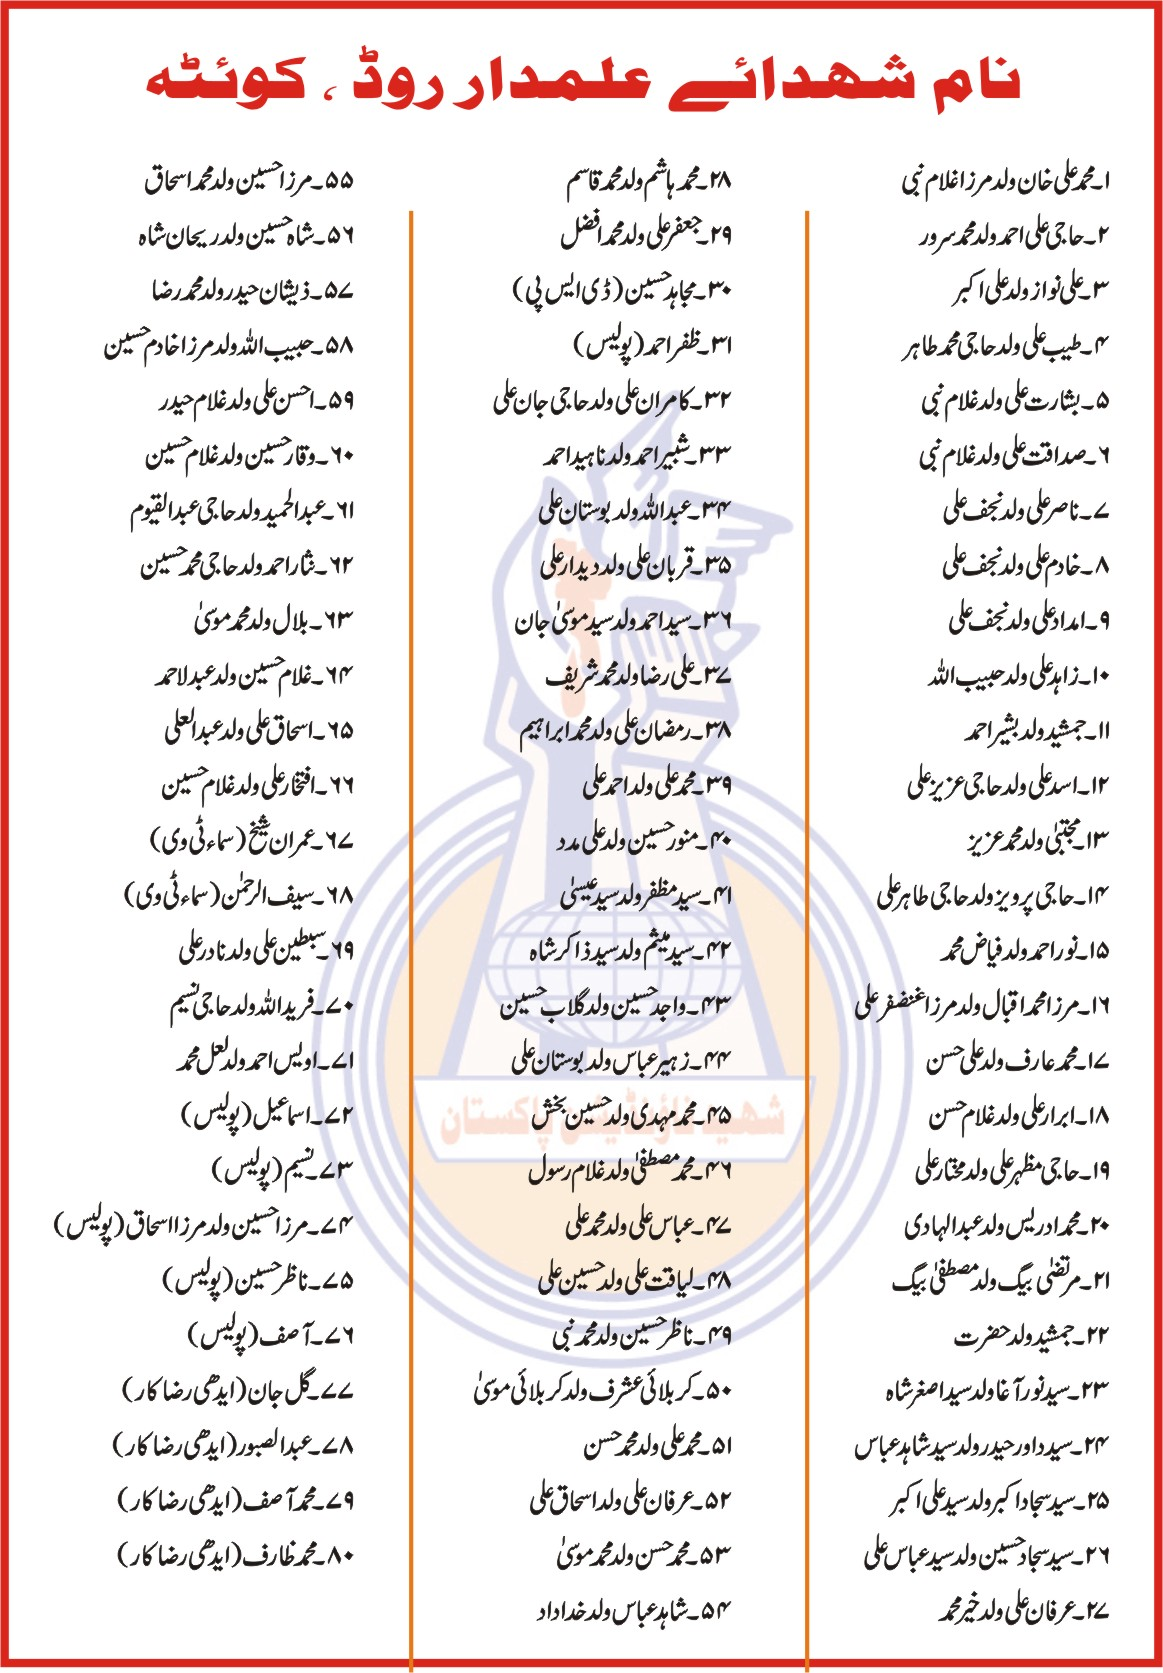 Alamdaar Road Blasts Shaheed Names